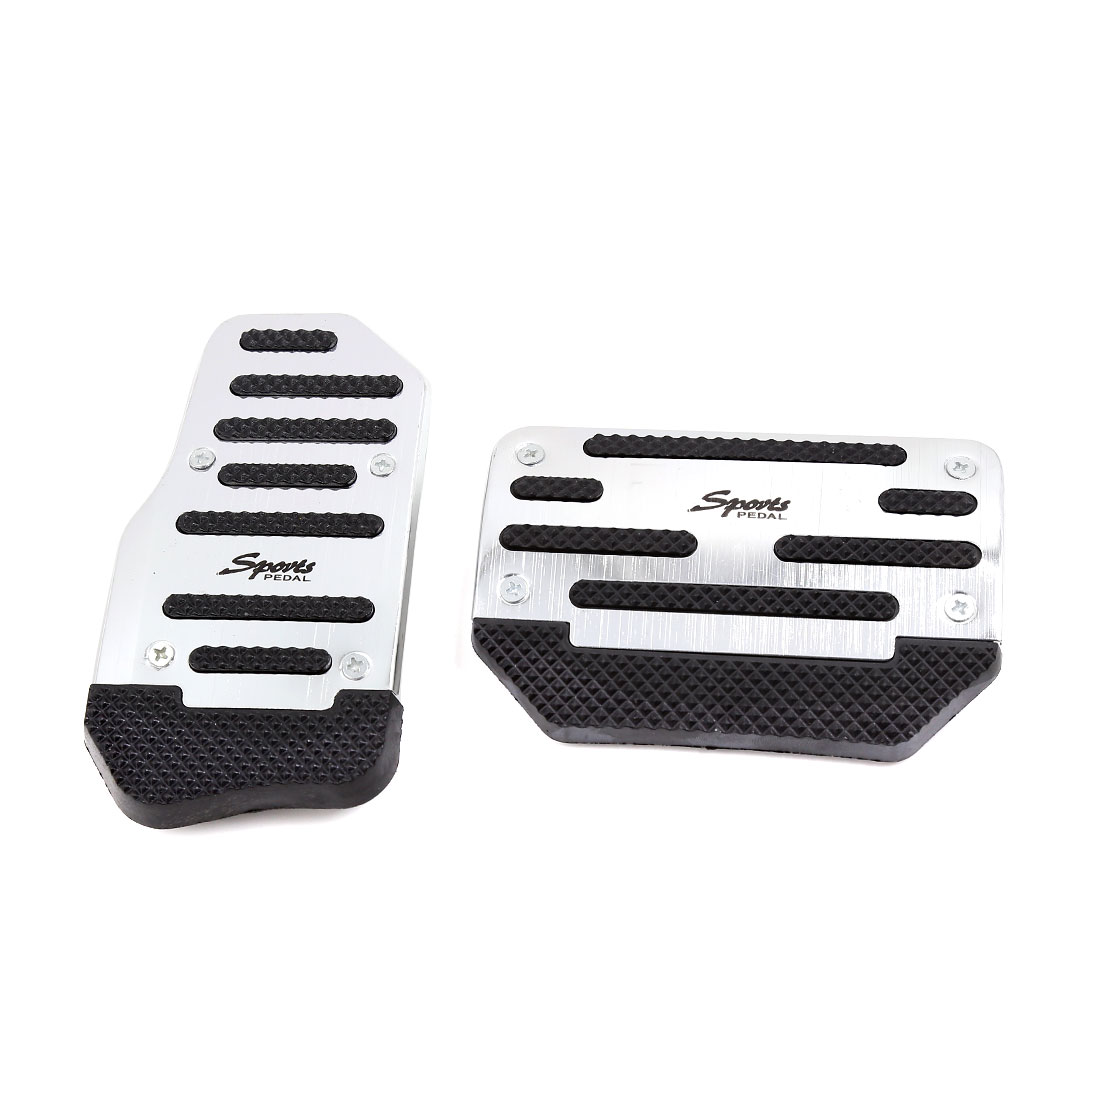 2 in 1 Black Sliver Tone Non-slip Gas Brake Pedal Cover Set for Auto Car